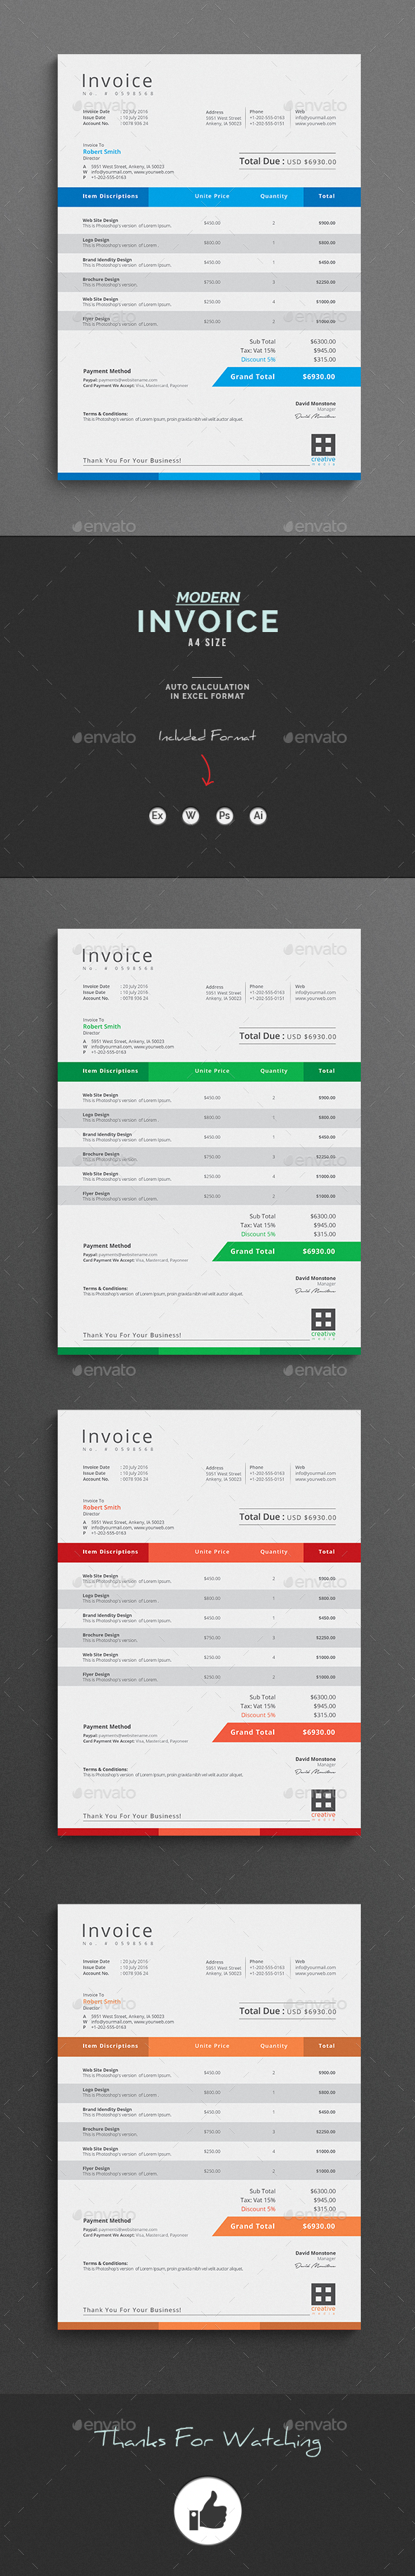 GraphicRiver Invoice 20485410